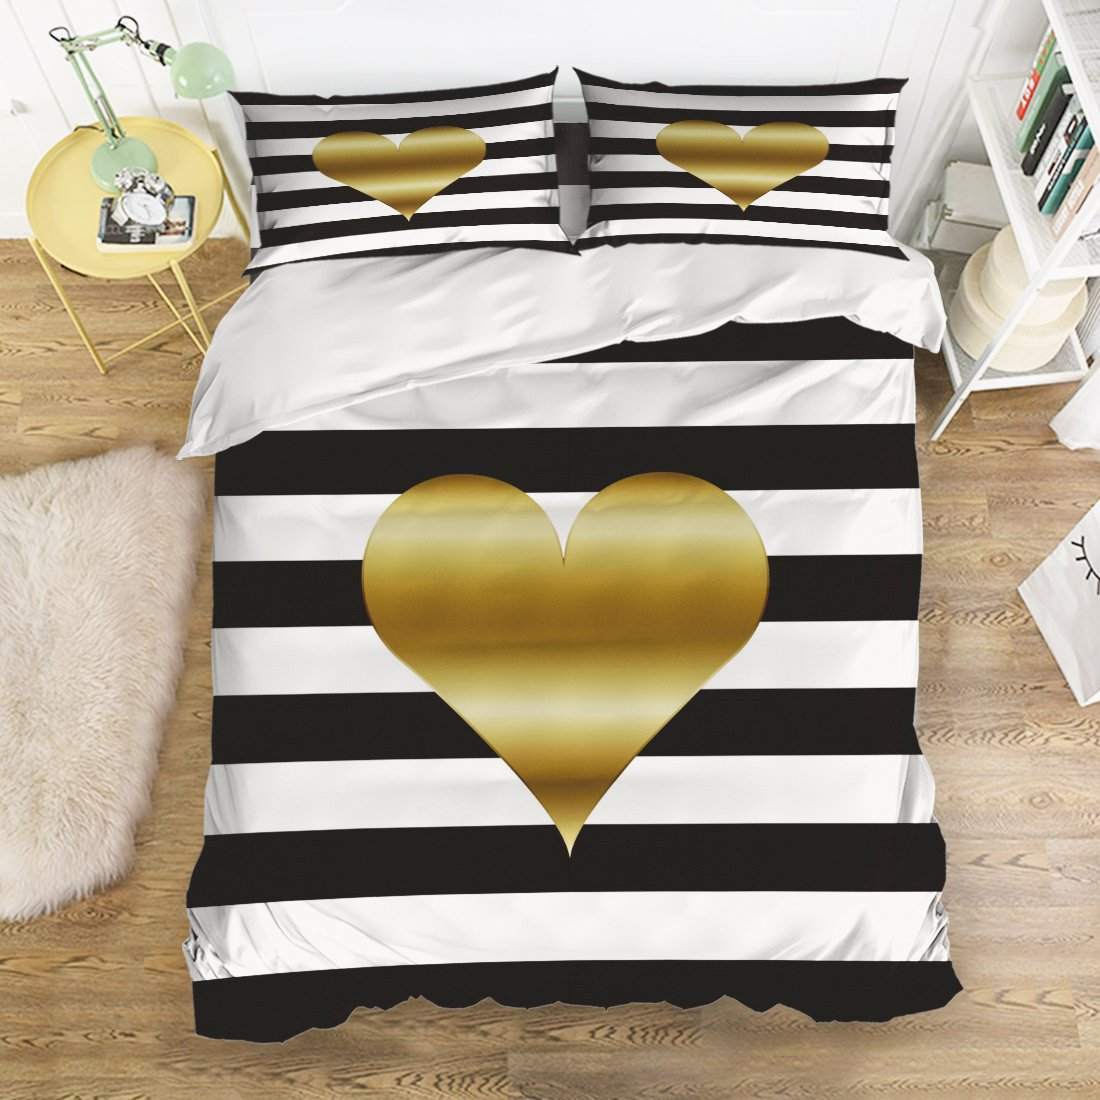 Bedding 4 Piece bed Set Comfortable Soft Brushed Cotton,3D Magic Mysterious Gold Heart Black And White Stripe Pattern 4 Piece Bed Sheet Set Duvet Cover Flat Sheet and 2 Pillow Cases